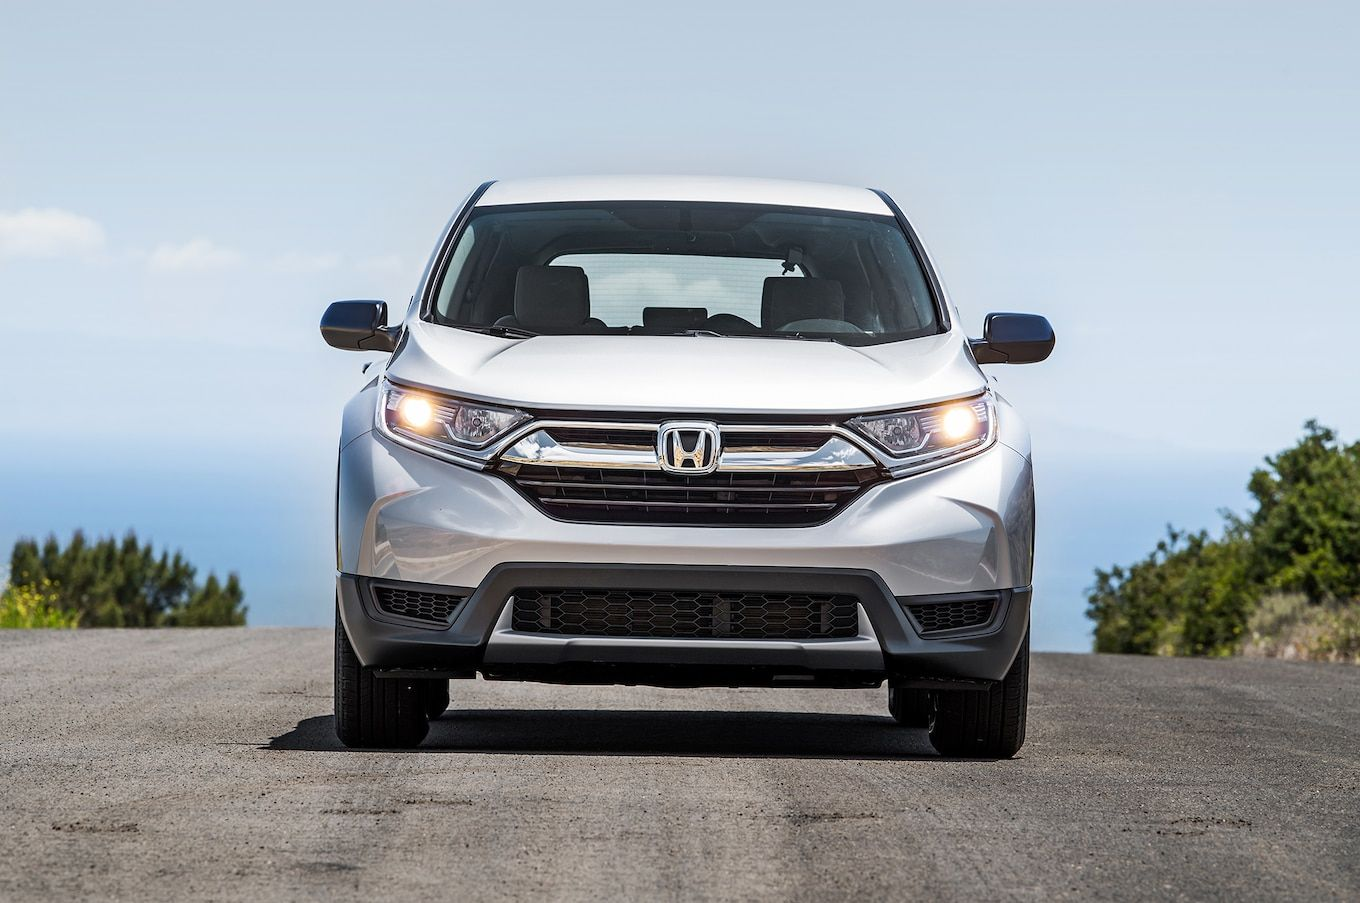 2018 Honda CRV LX FWD Review LongTerm Review Update 1